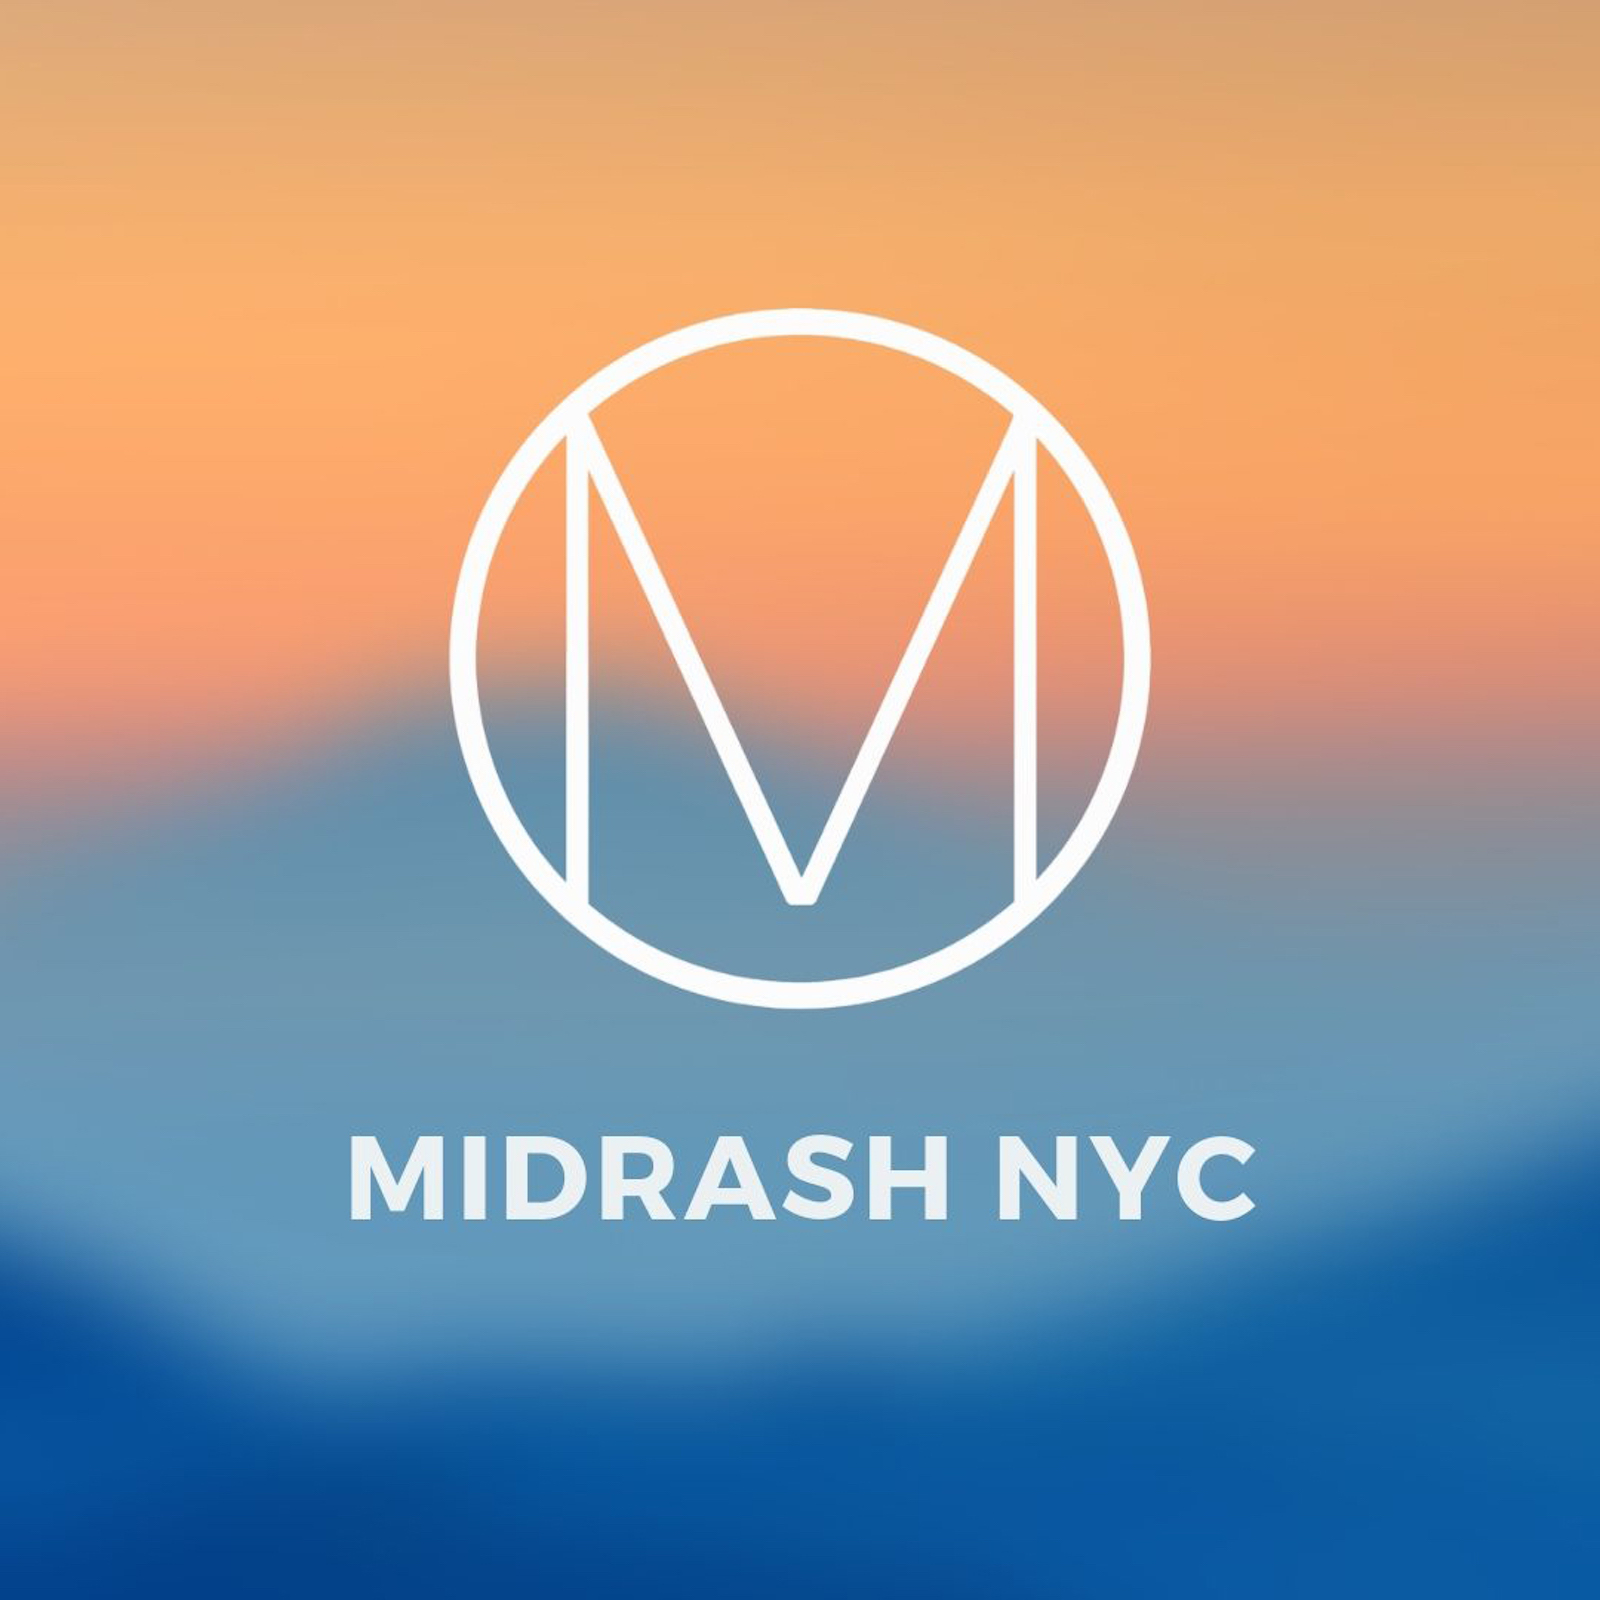 Midrash NYC